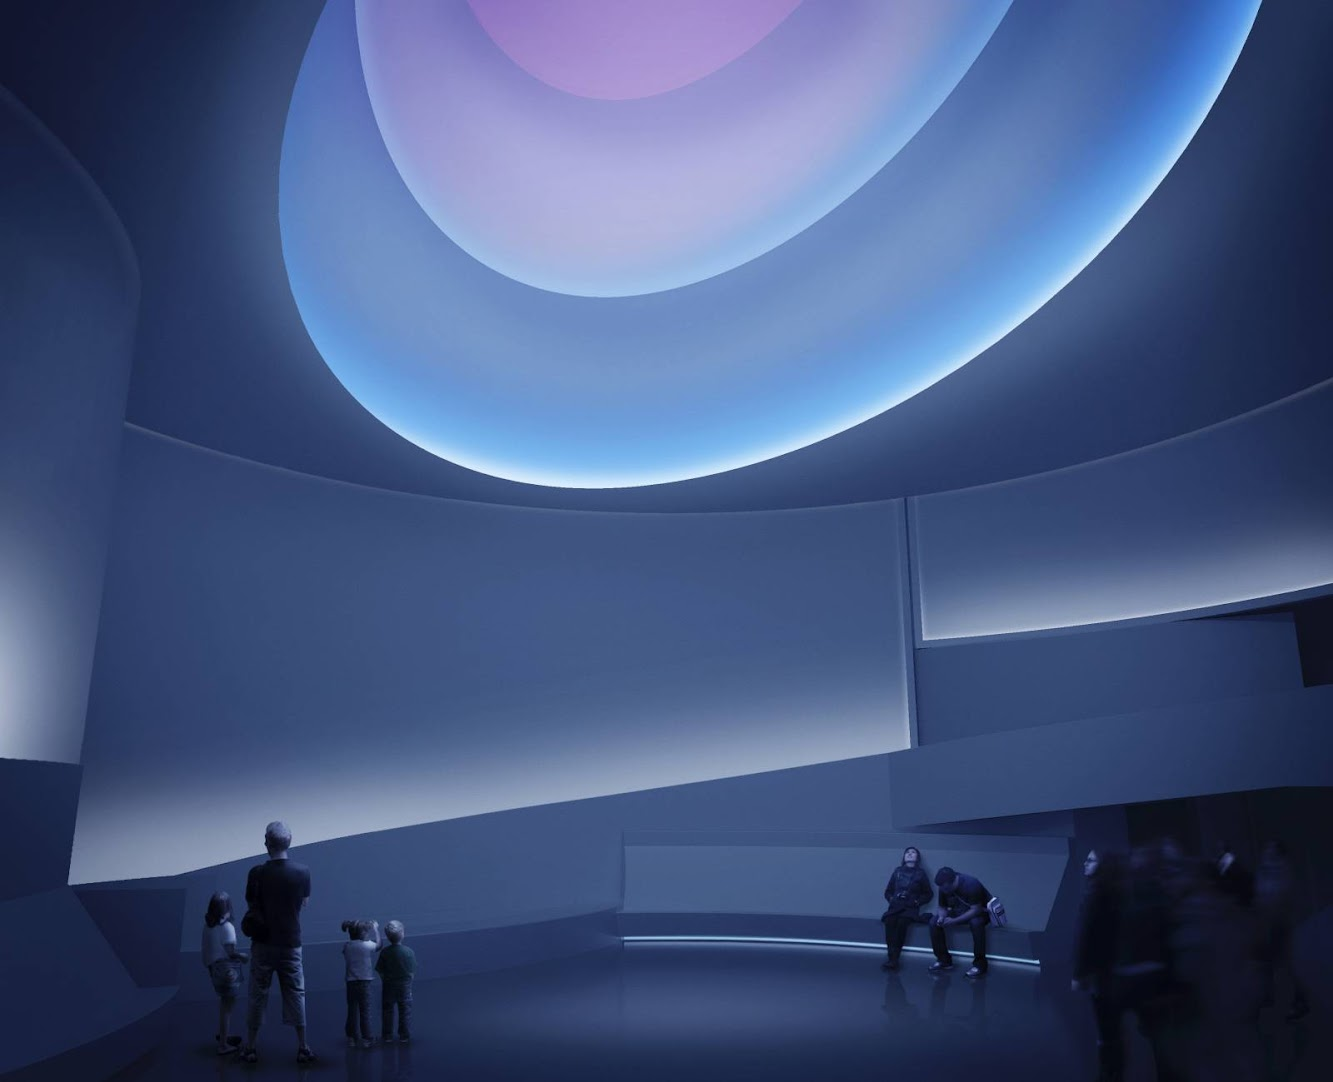 guggenheim museum, 1260 Broadway theatre, New York, 10001, Stati Uniti: The Guggenheim Light Sculpture by James Turrell